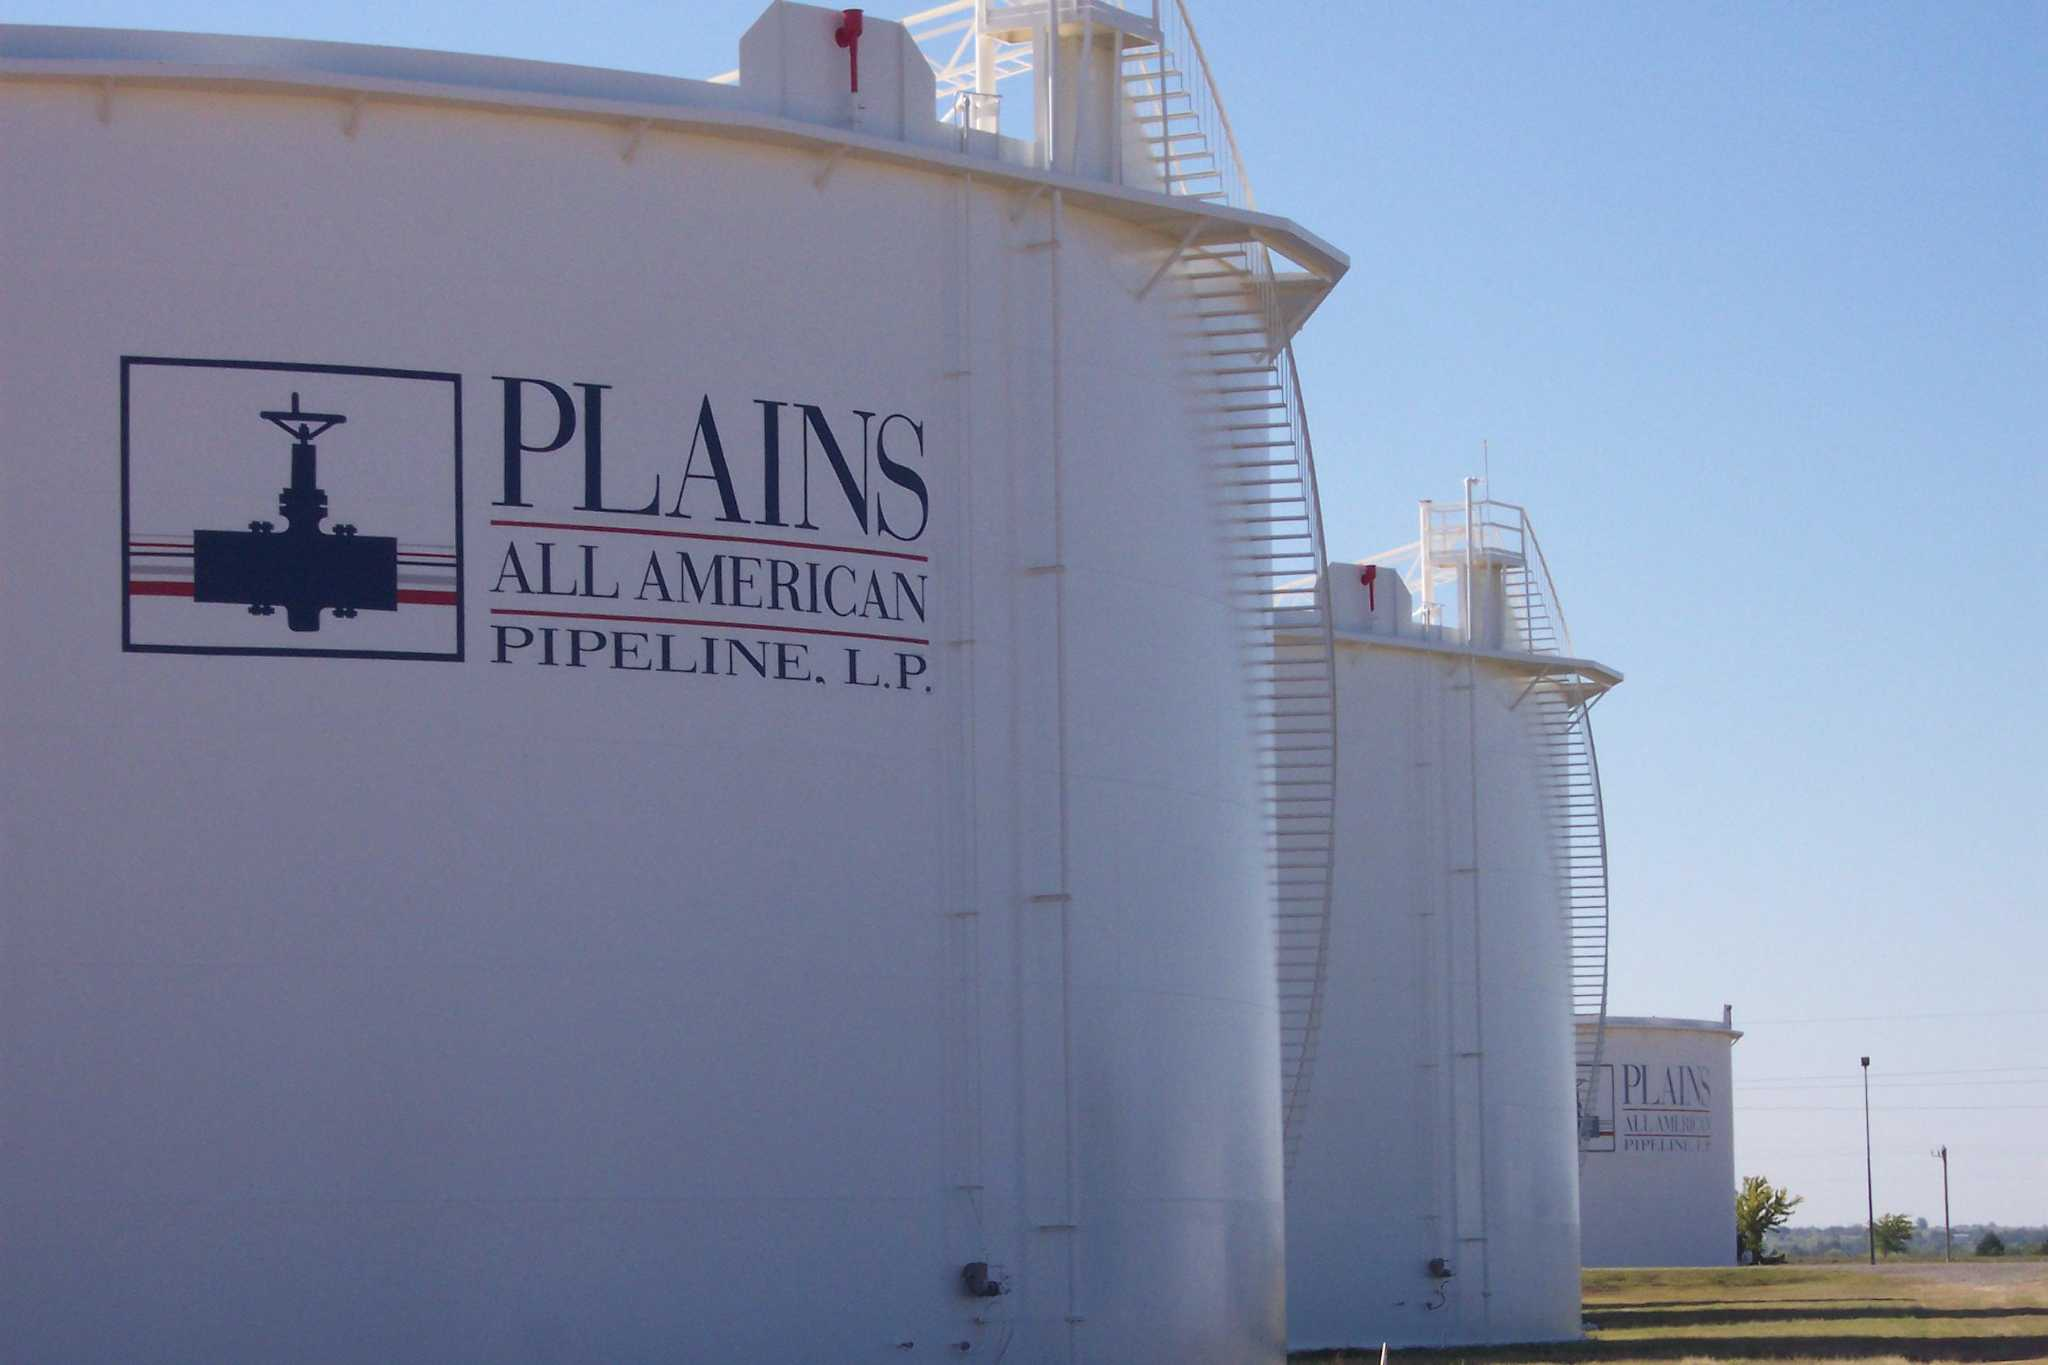 Plains All American to sell $850M of natural gas storage assets to Hartree Partners